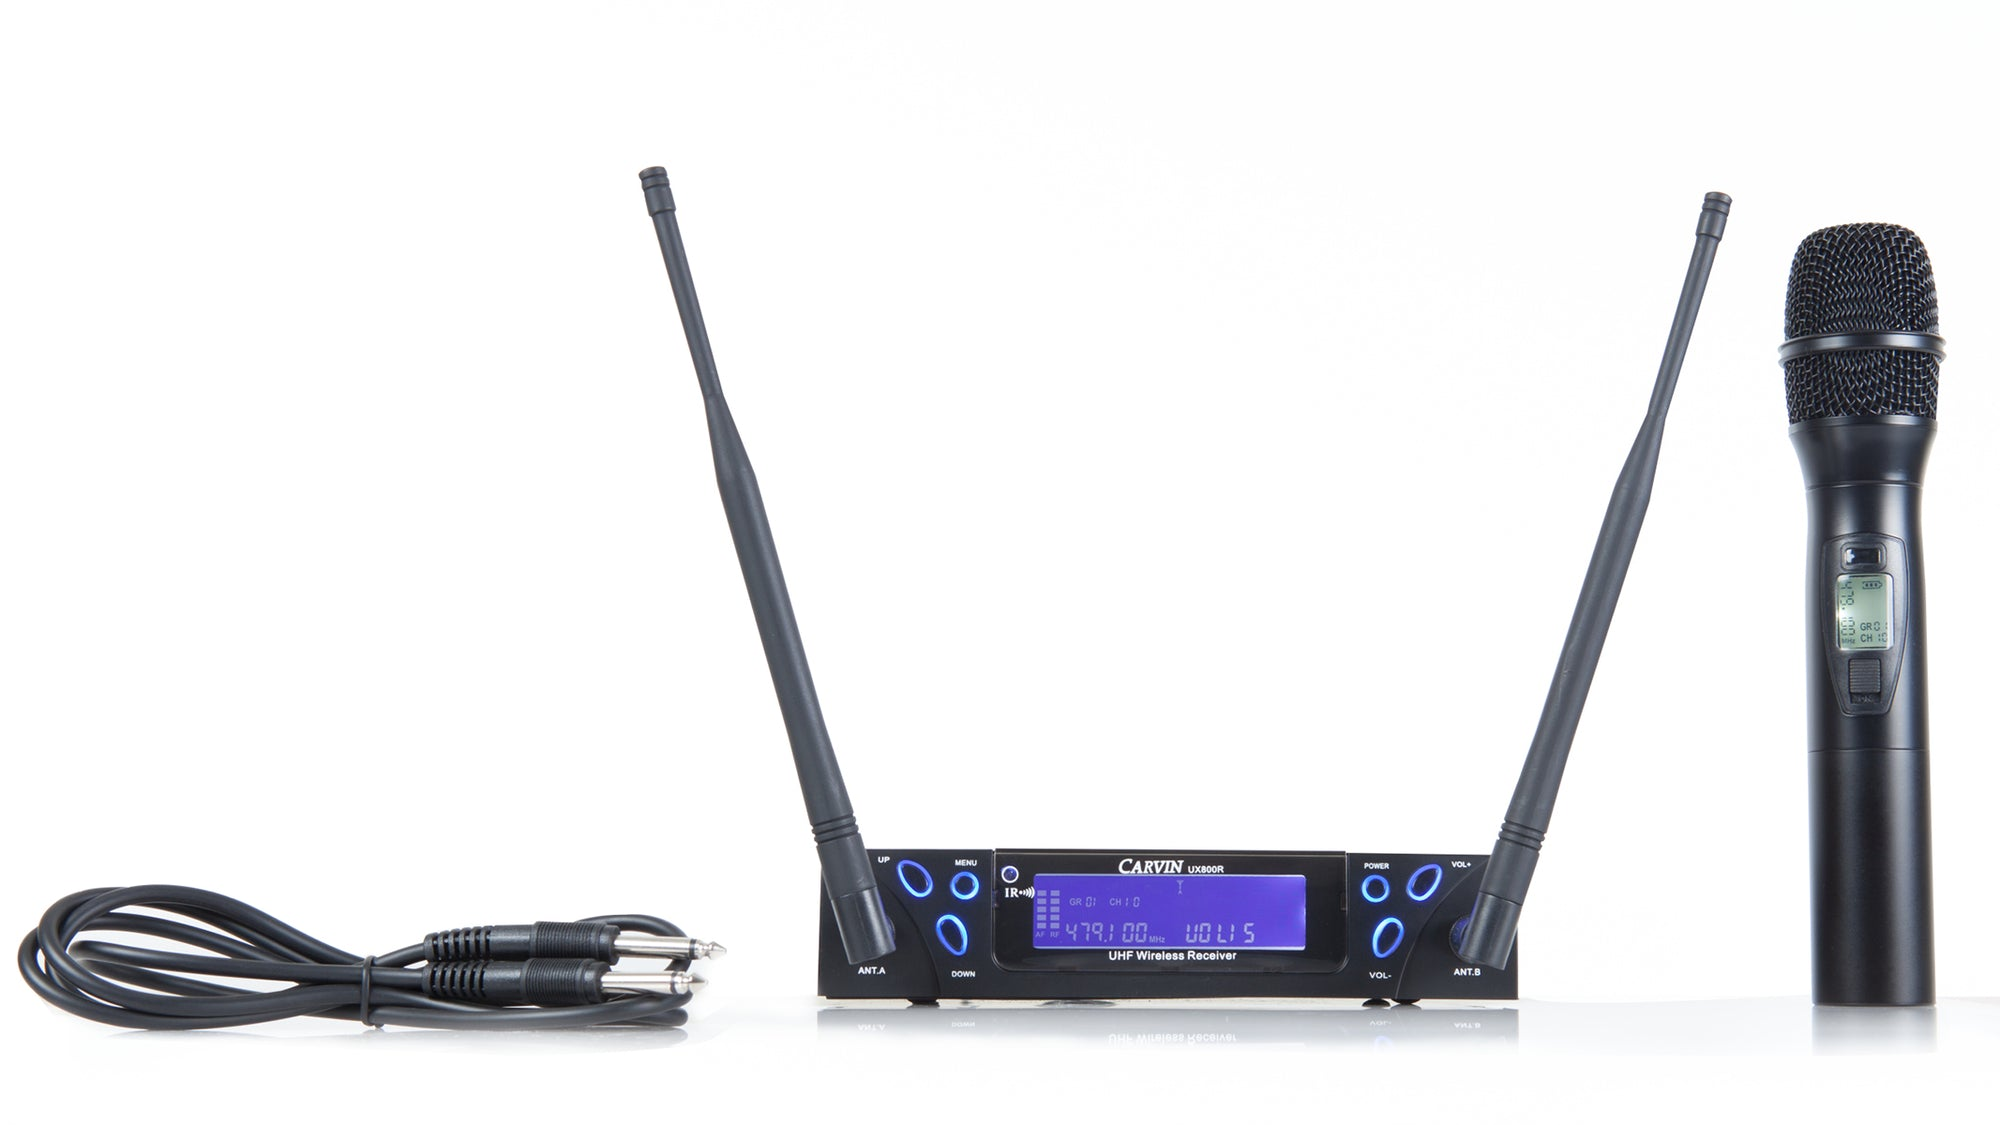 carvin ux800mc rechargeable wireless microphone system